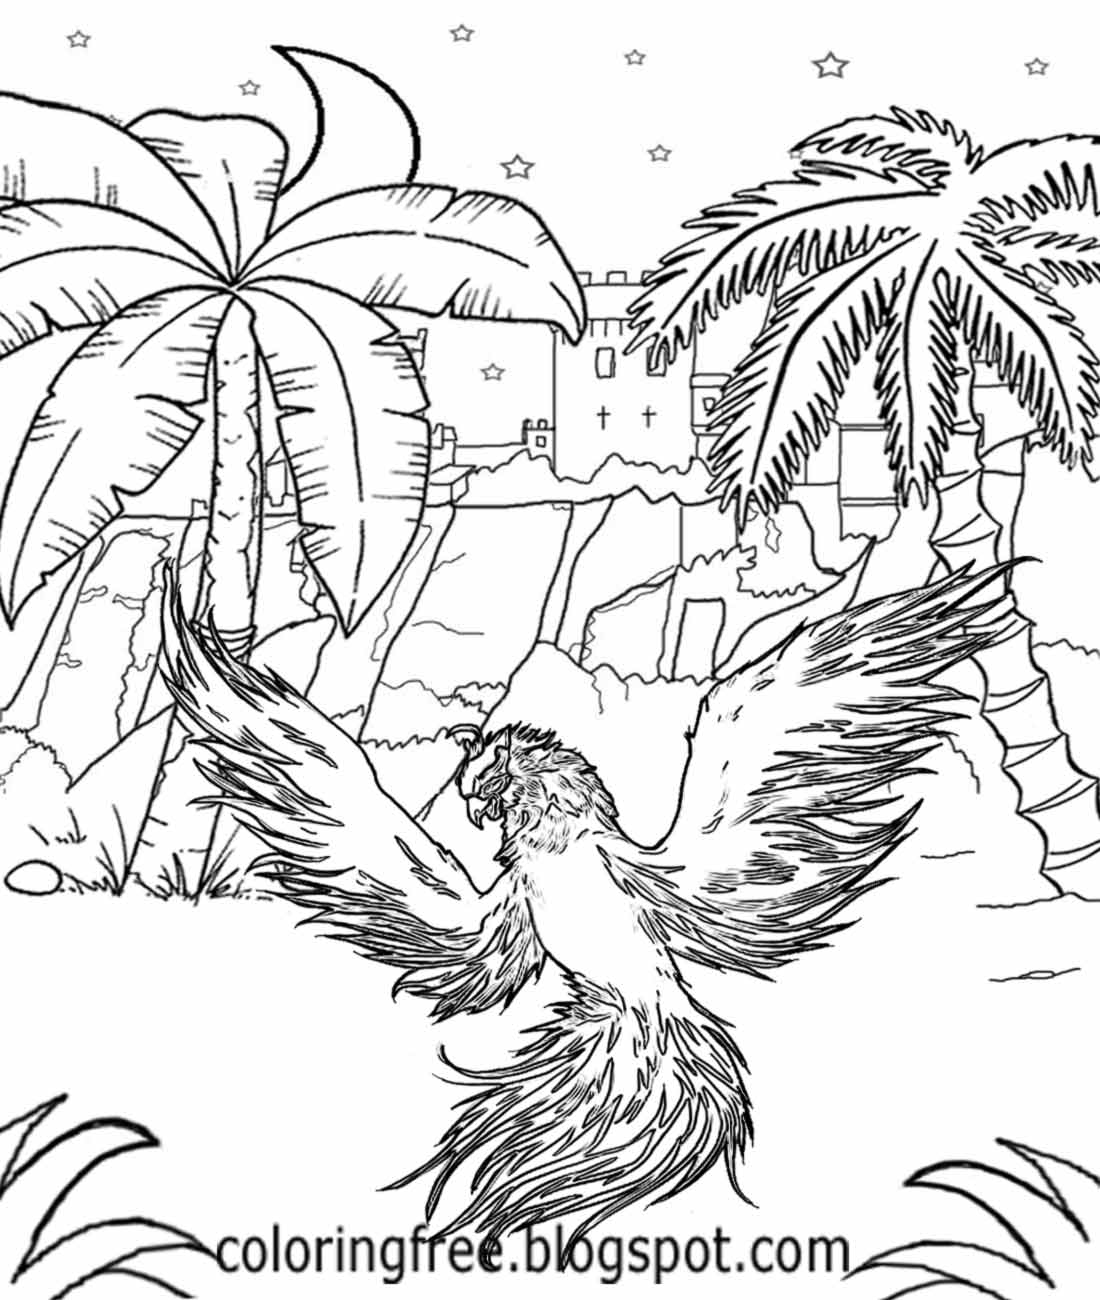 100 593 best fantastical coloring pages images on